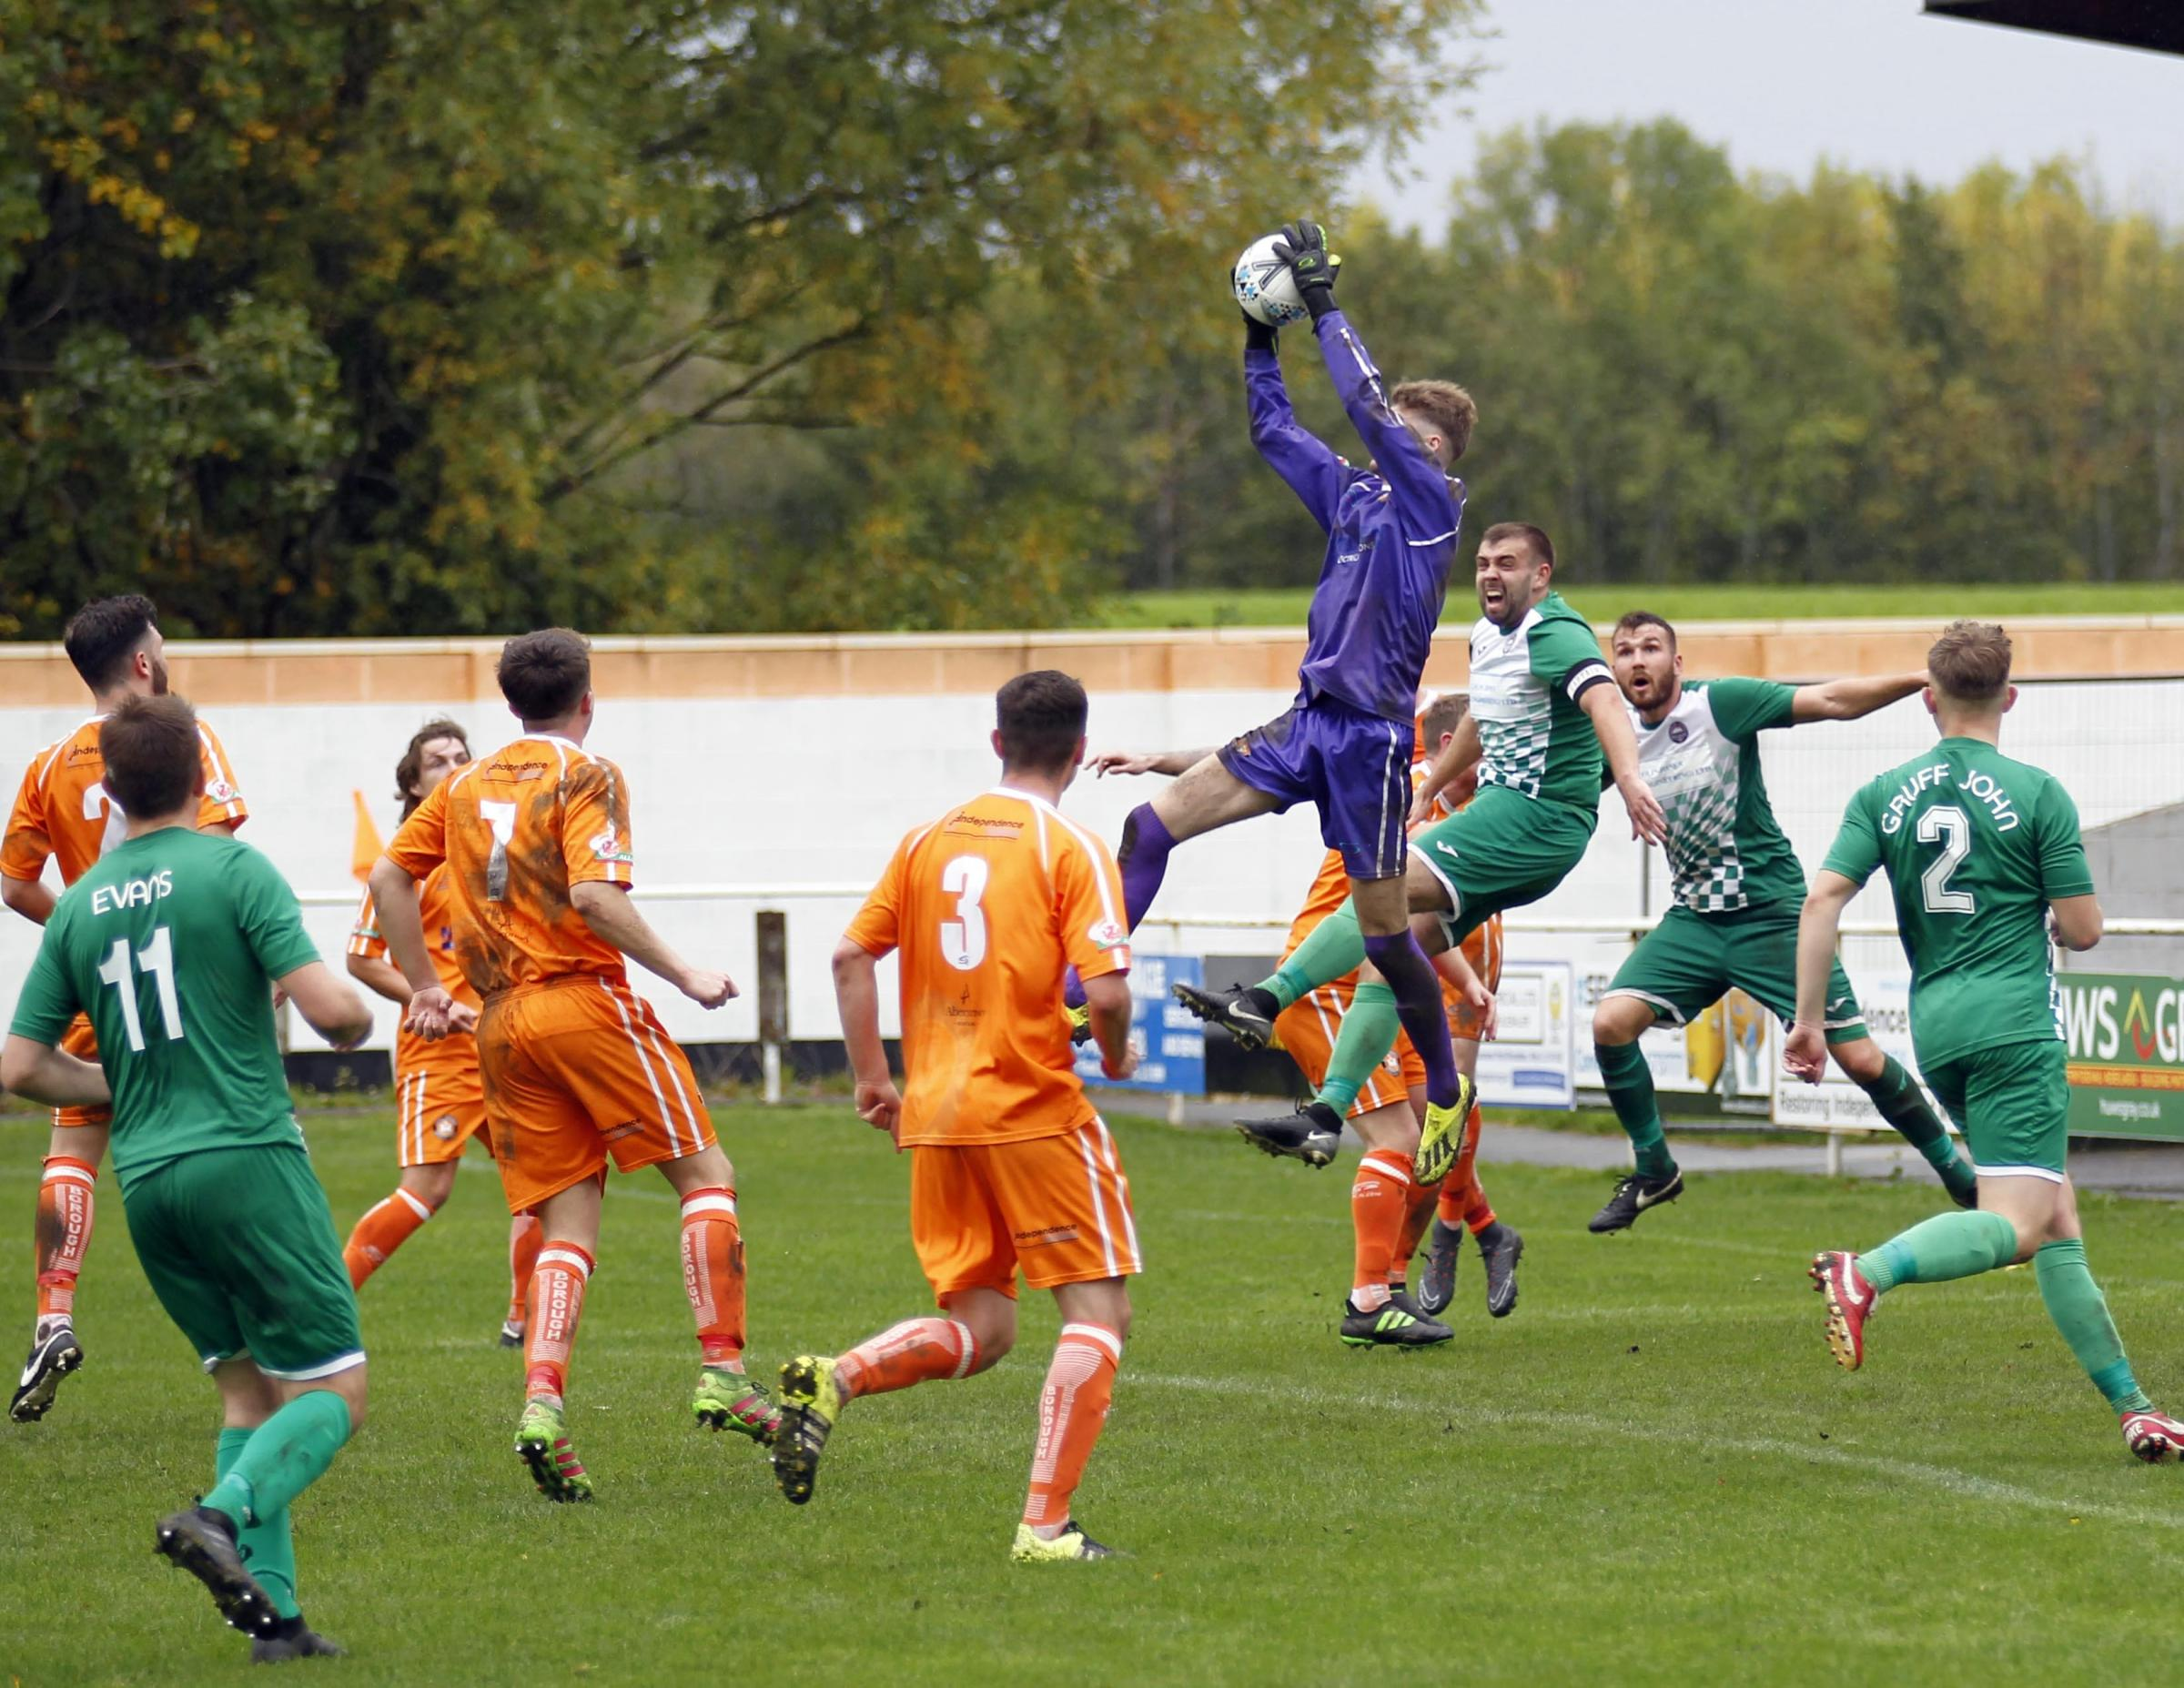 Conwy Borough suffered defeat on their travels at Prestatyn Town (Photo: Dave Thomas)